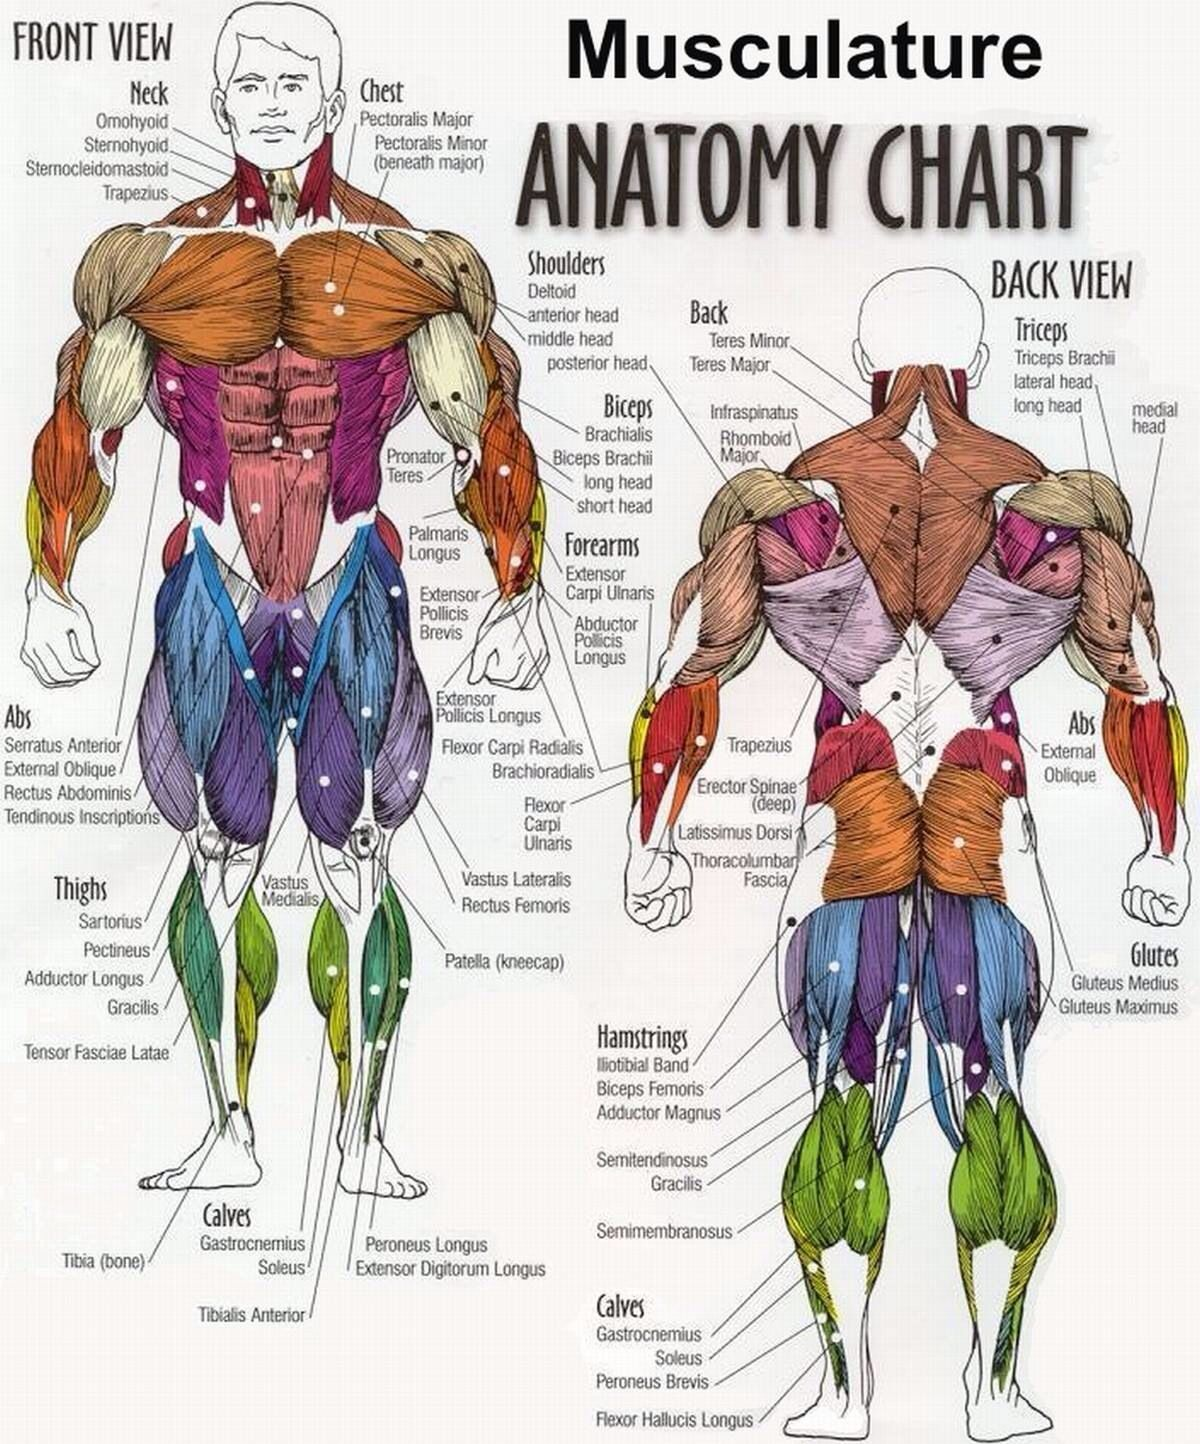 small resolution of body building anatomy chart from gym posters